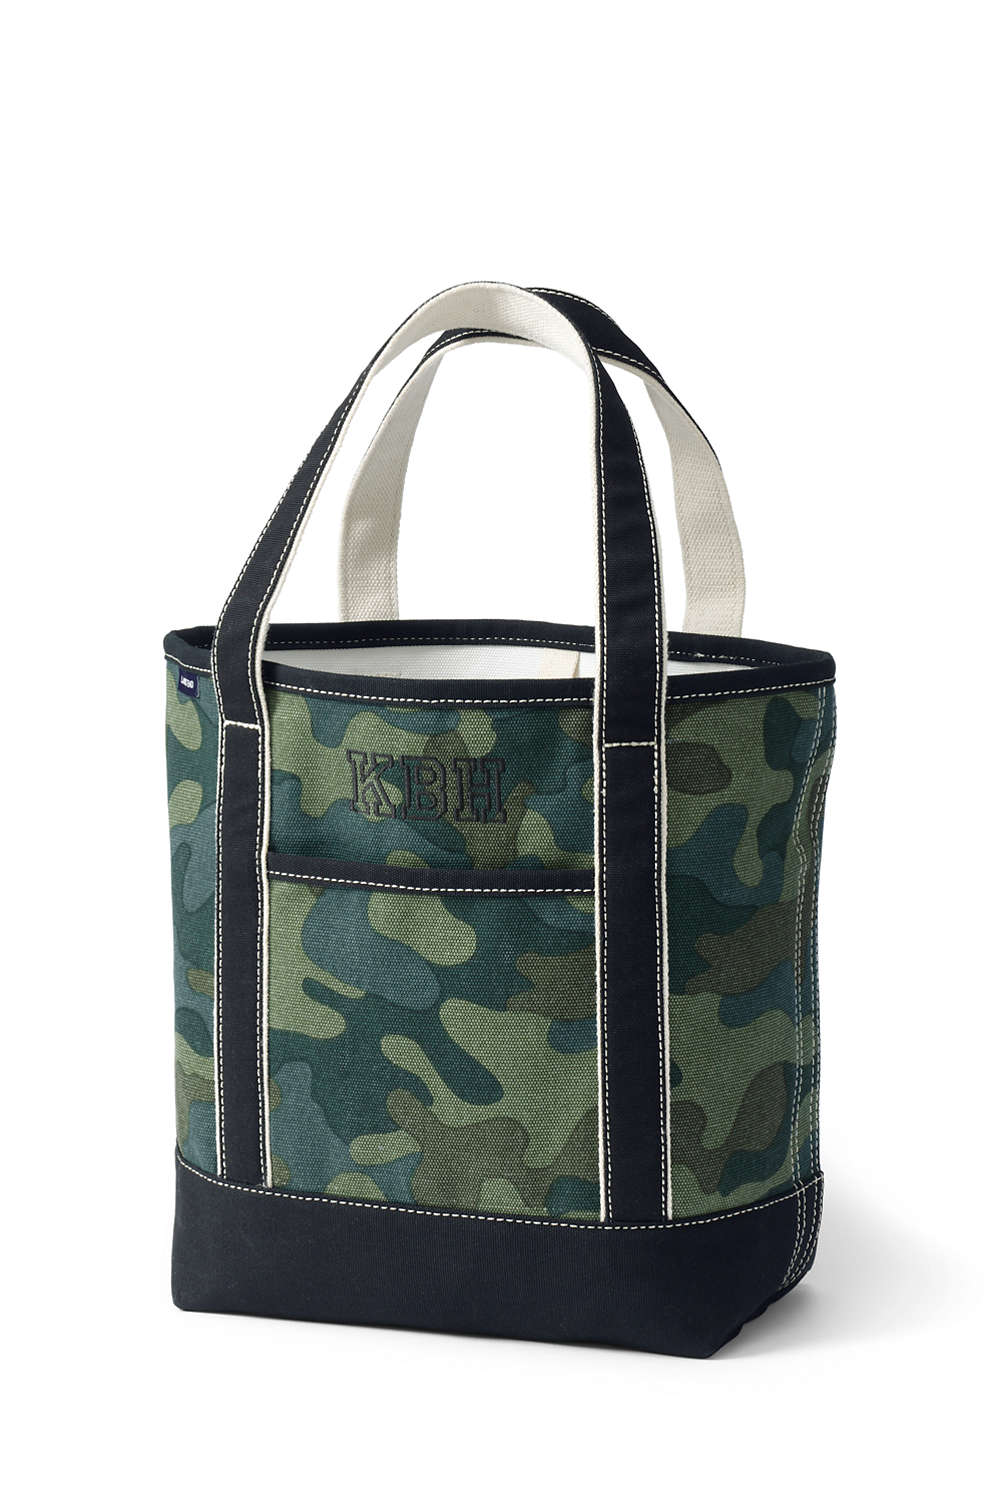 5f4ea340da2f Print Canvas Tote Bag from Lands  End